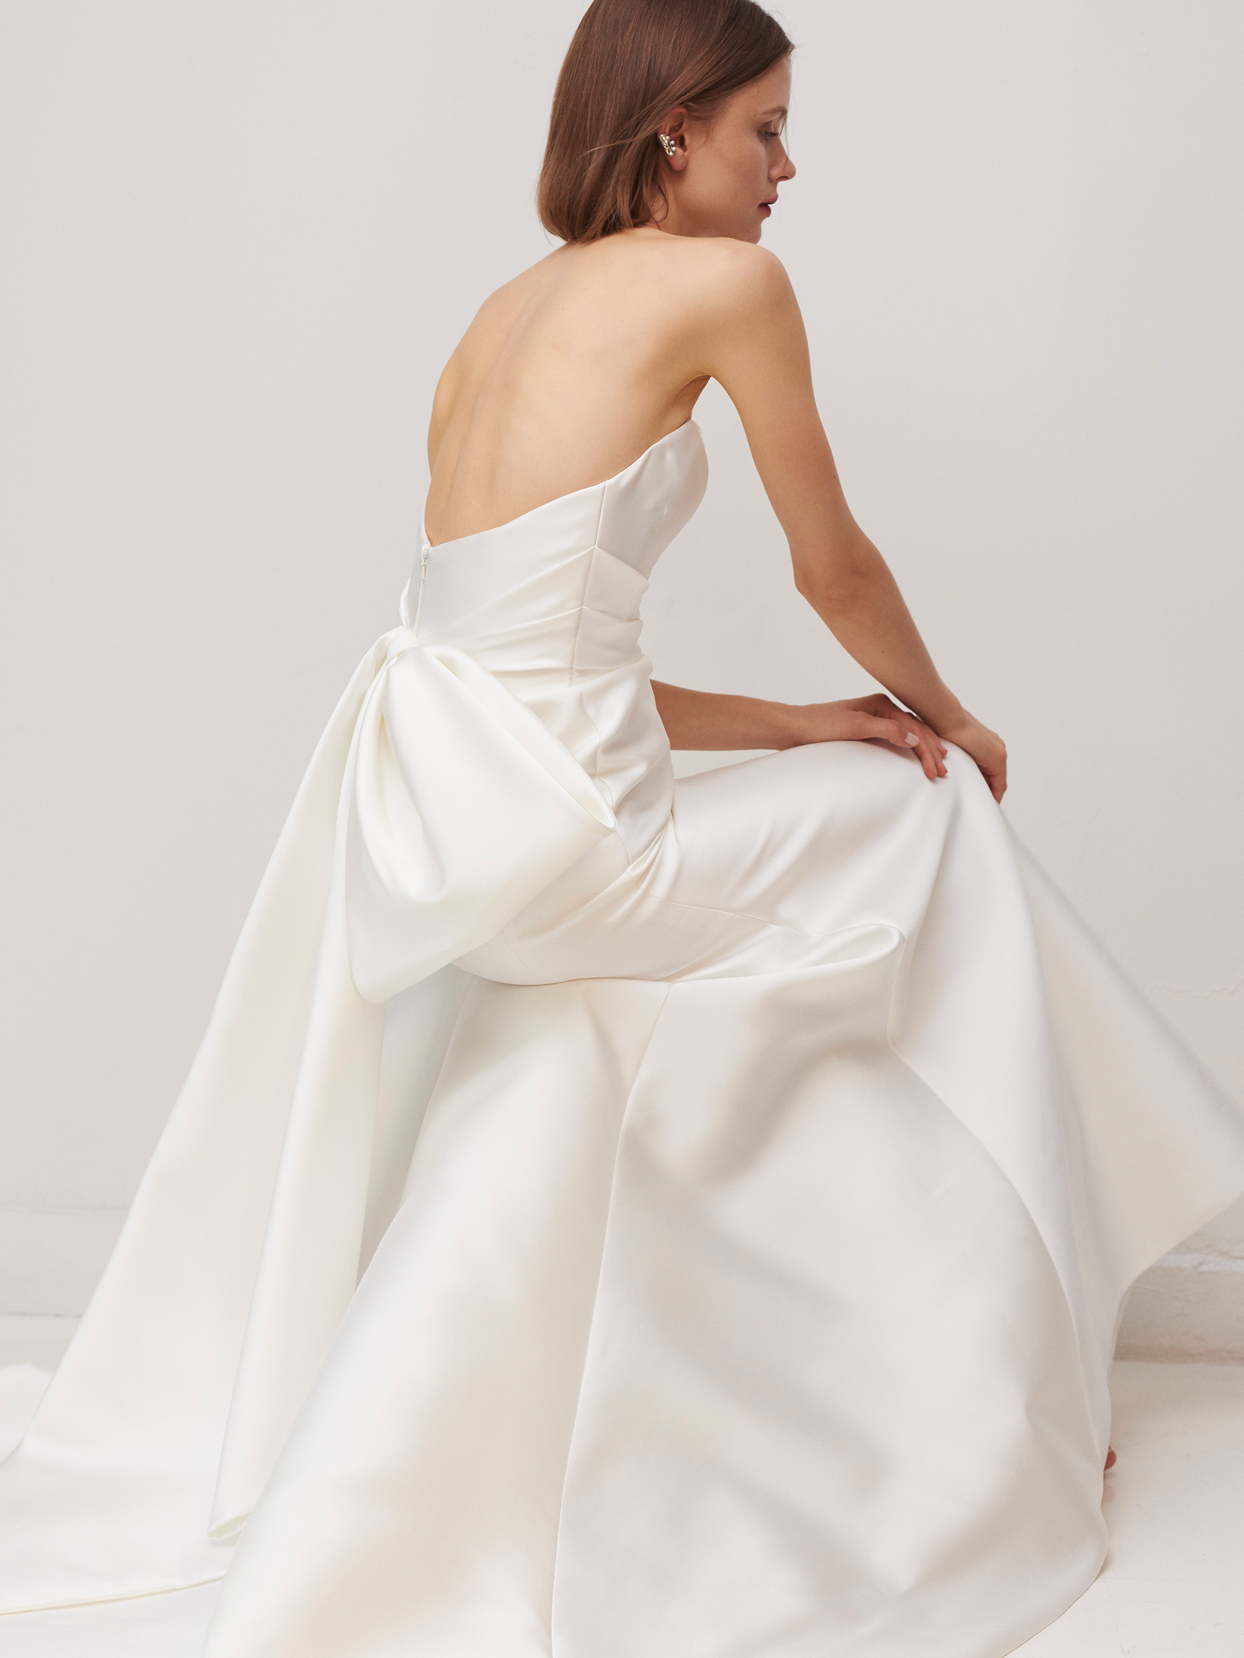 rivini by rita vinieris strapless wedding dress with bow in back fall 2020